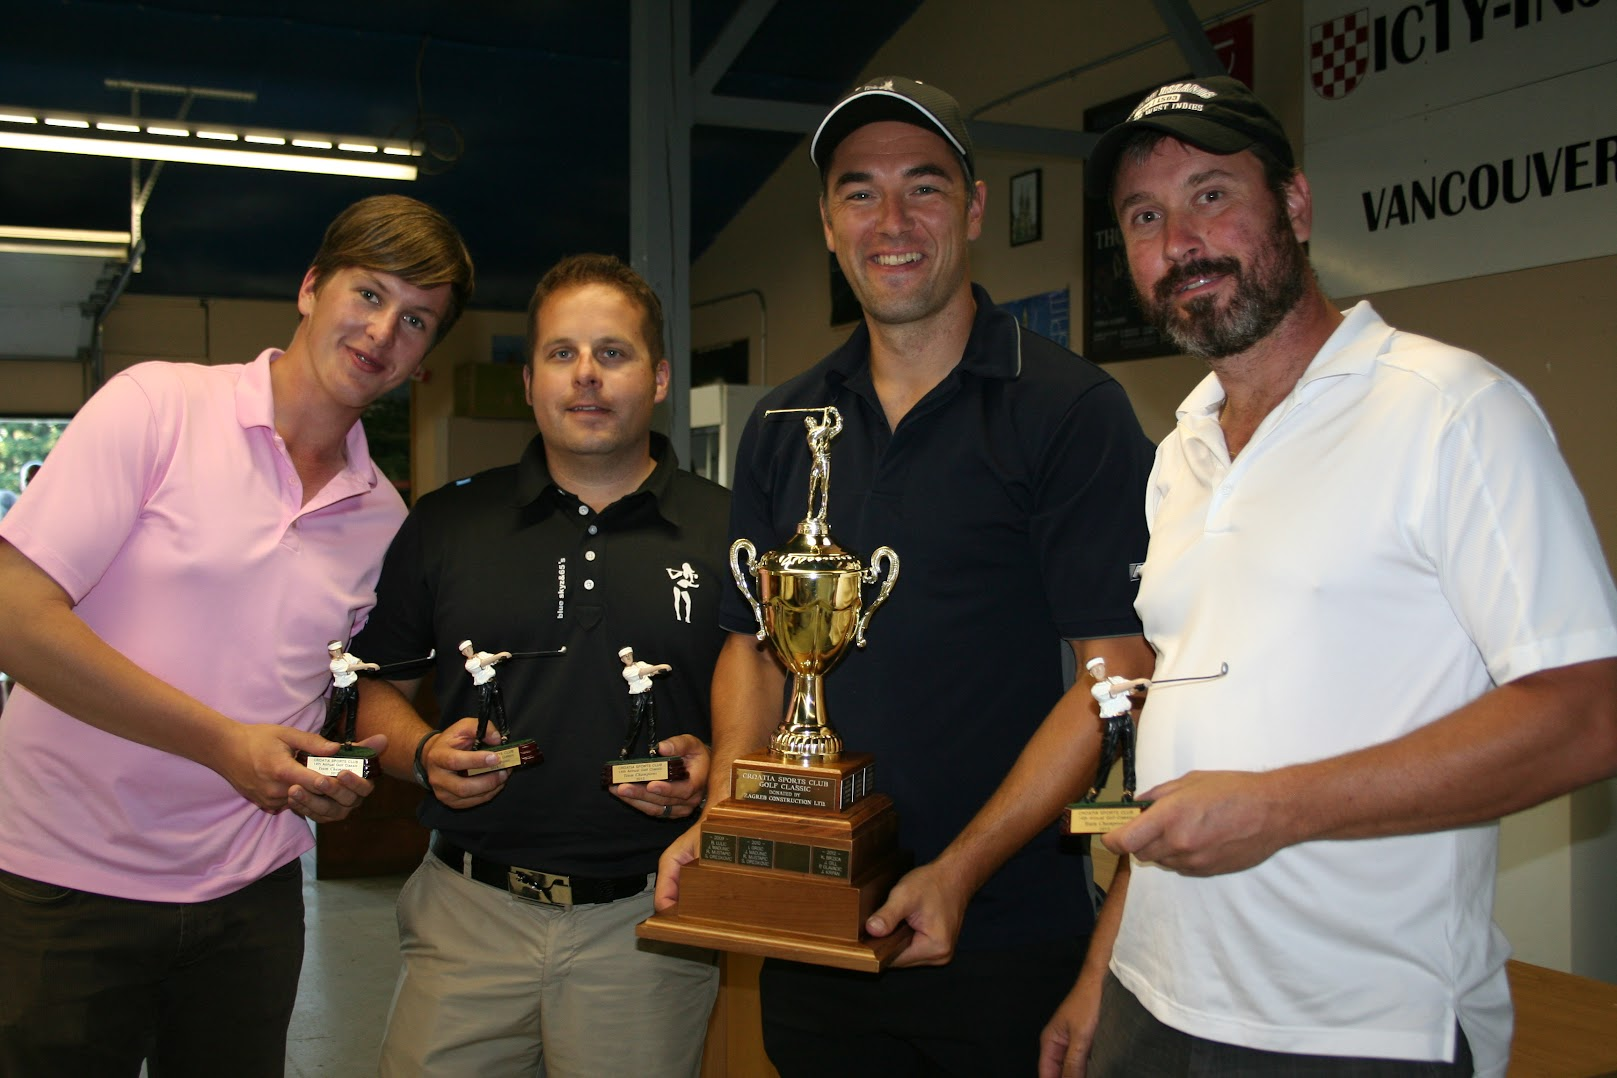 Croatia SC Golf Winners: Steven Lane, Mike Majer, Mike Kovac, Eddy Peric